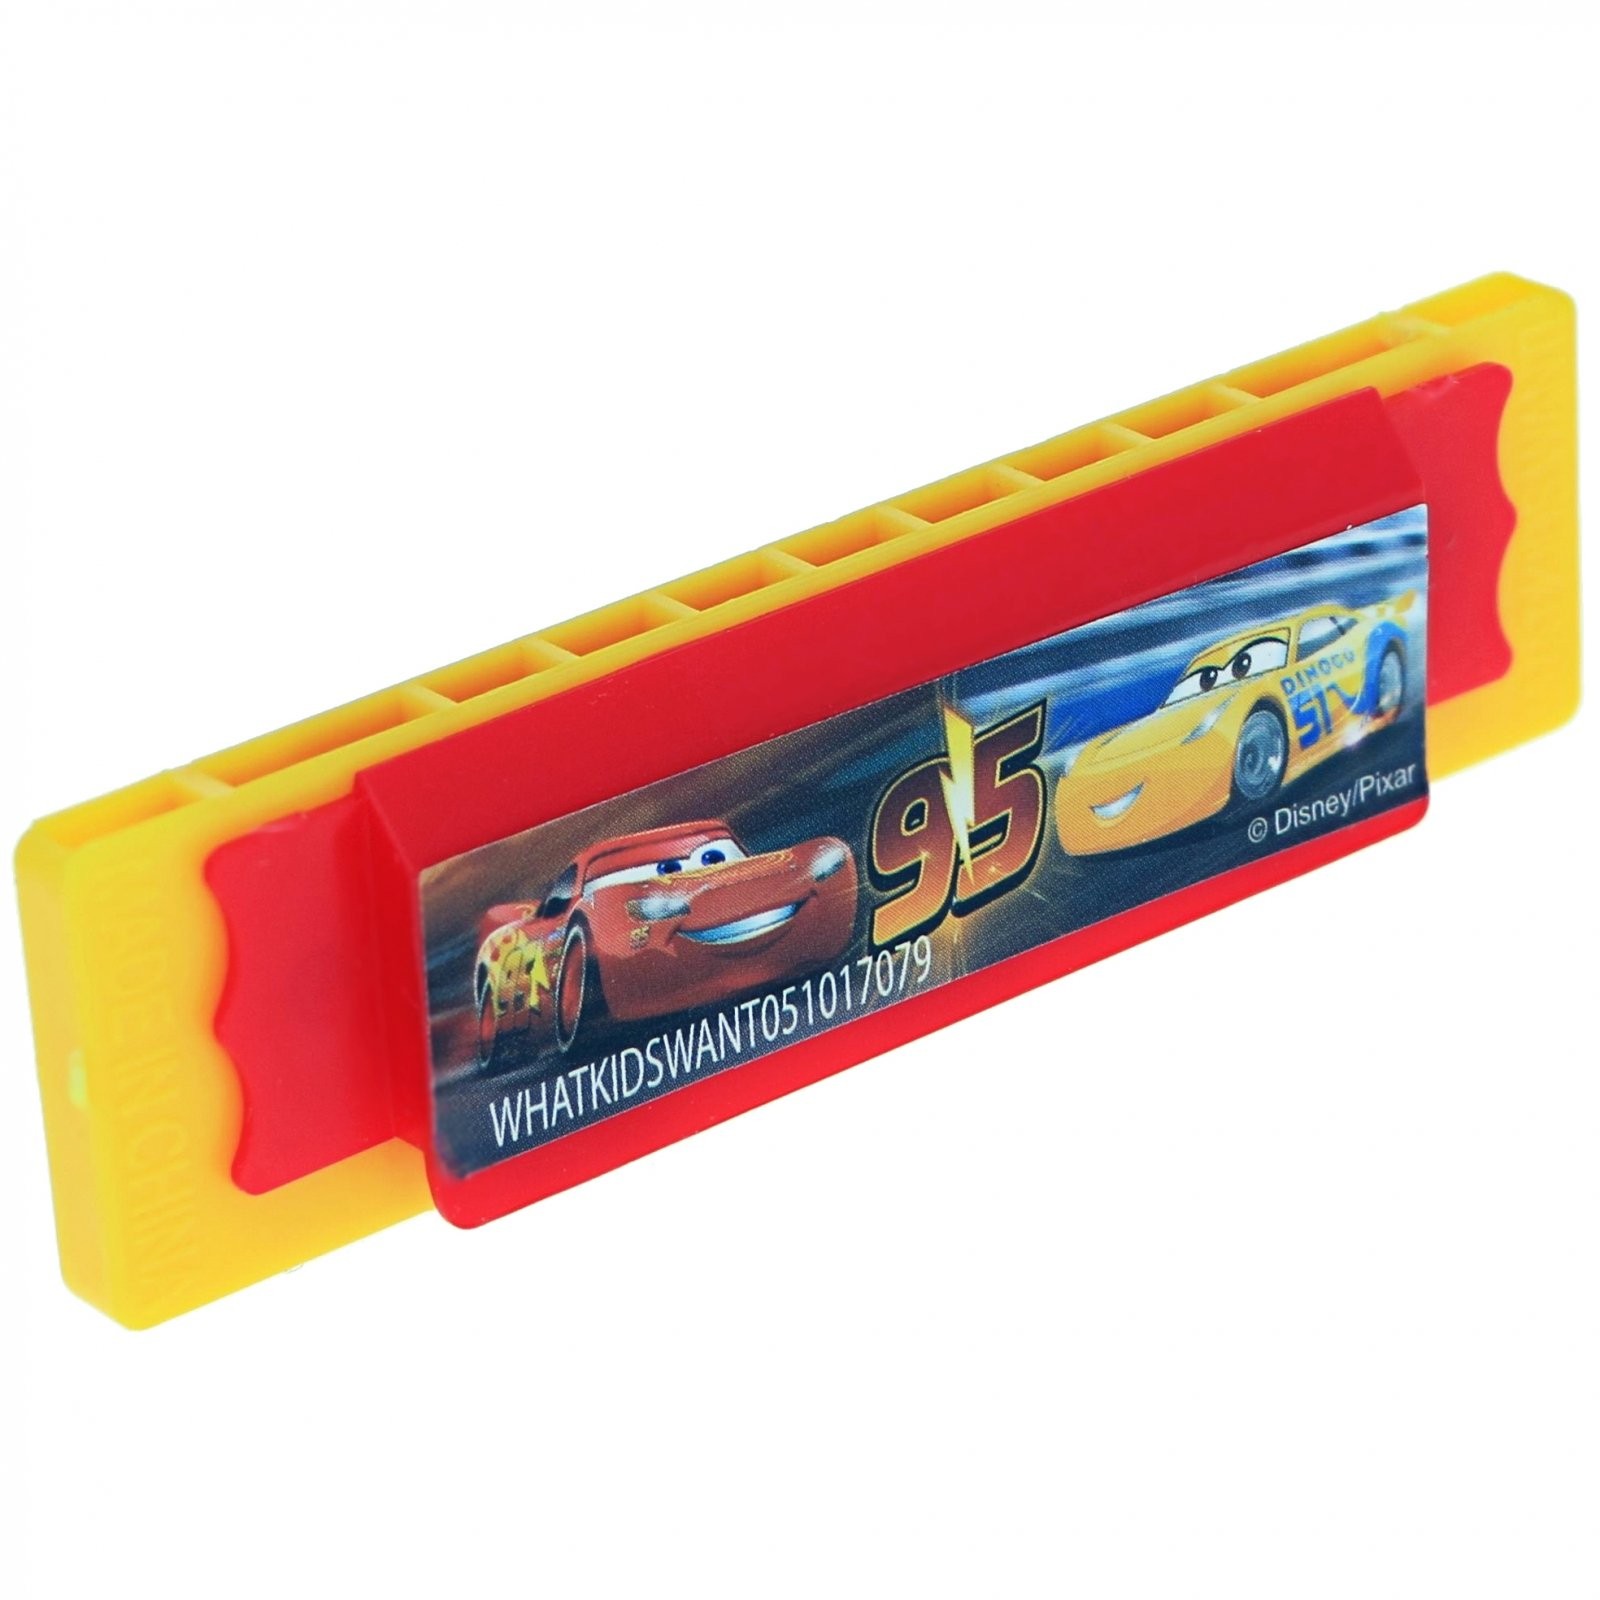 Disney Pixar Cars 3 Mini Harmonicas Kids Musical Instrument Toys 4 Pack - Yellow